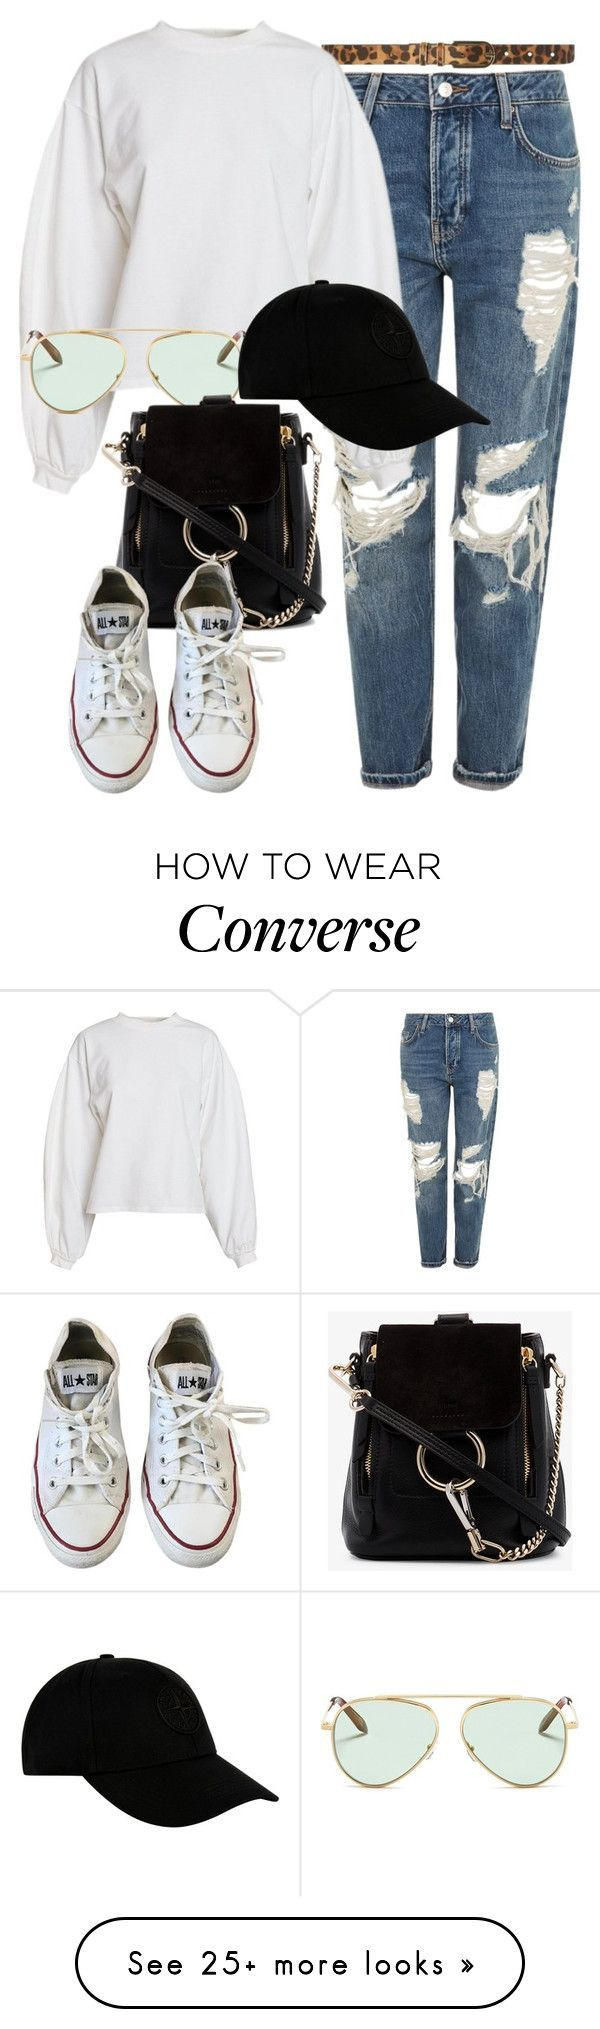 """""""Topshop x Chloe"""" by muddychip-797 on Polyvore featuring Topshop, Dorothy Perkins, NLY Trend, Victoria Beckham, Chloé, Converse, STONE ISLAND, casual, chloe and brunch #women'sfashiontrends"""